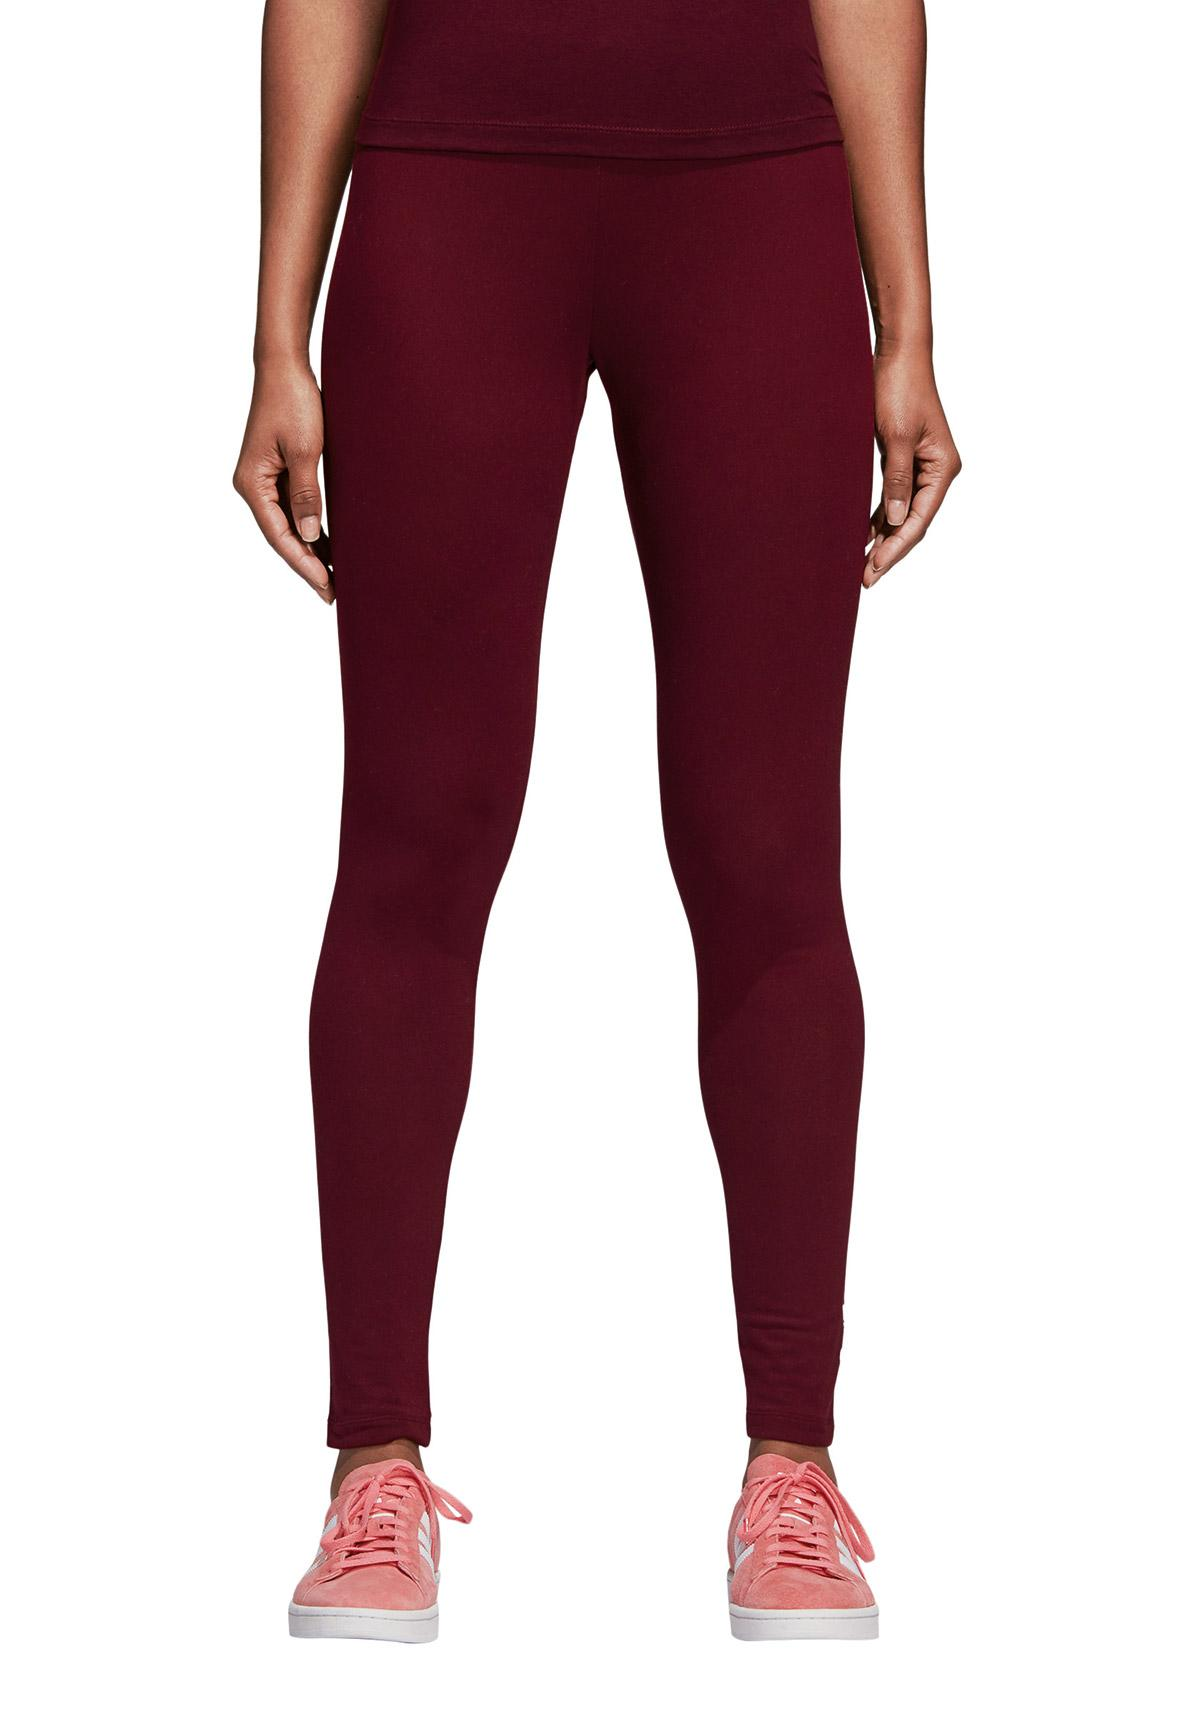 factory authentic stable quality another chance w) Leggings Adidas Trefoil Tight